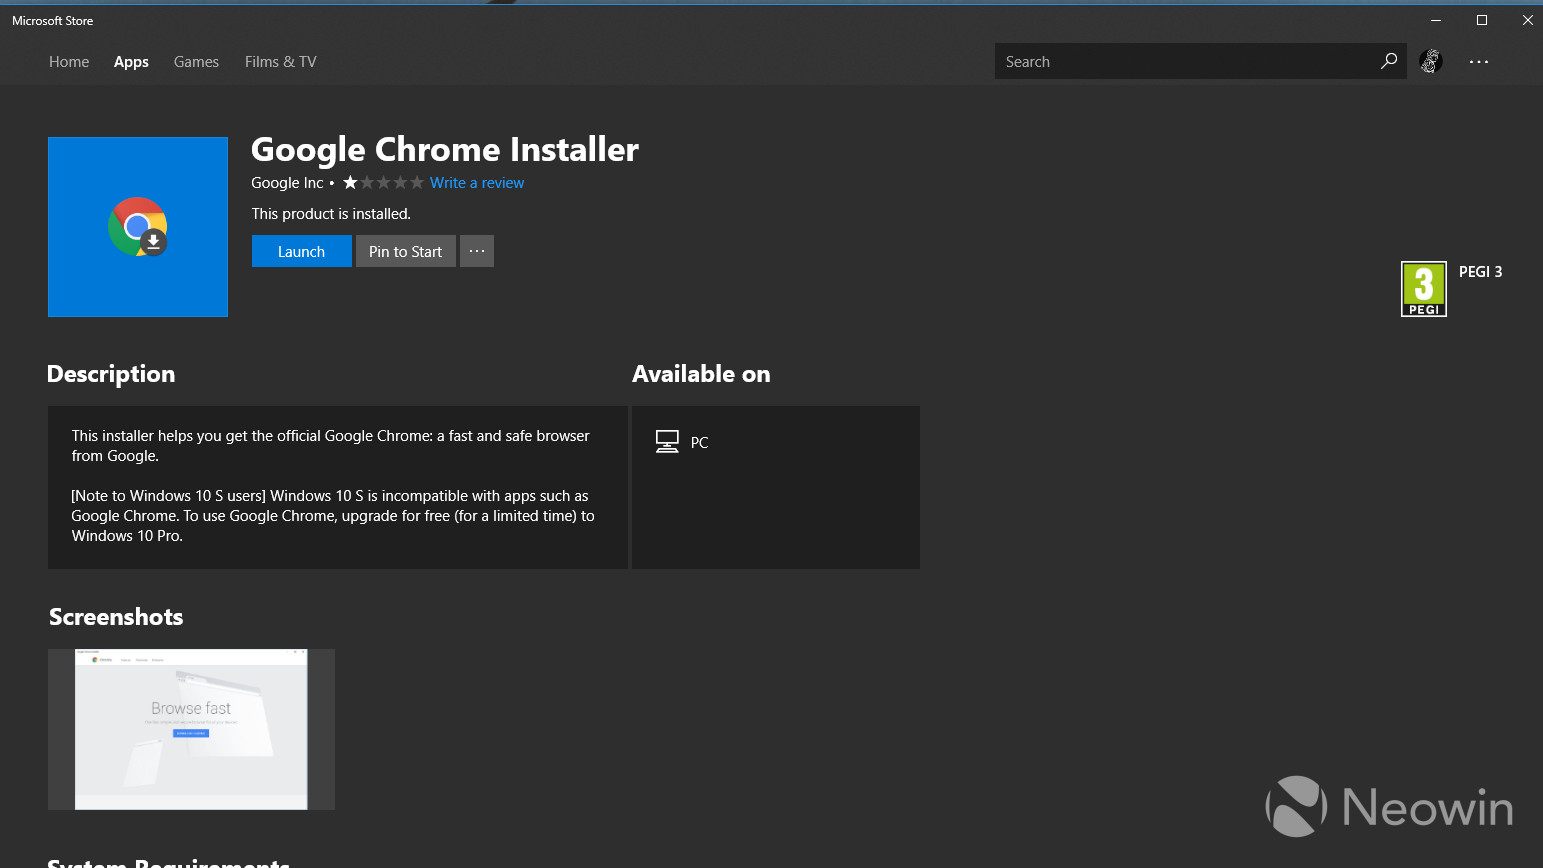 Google brings Chrome Installer to Microsoft Store